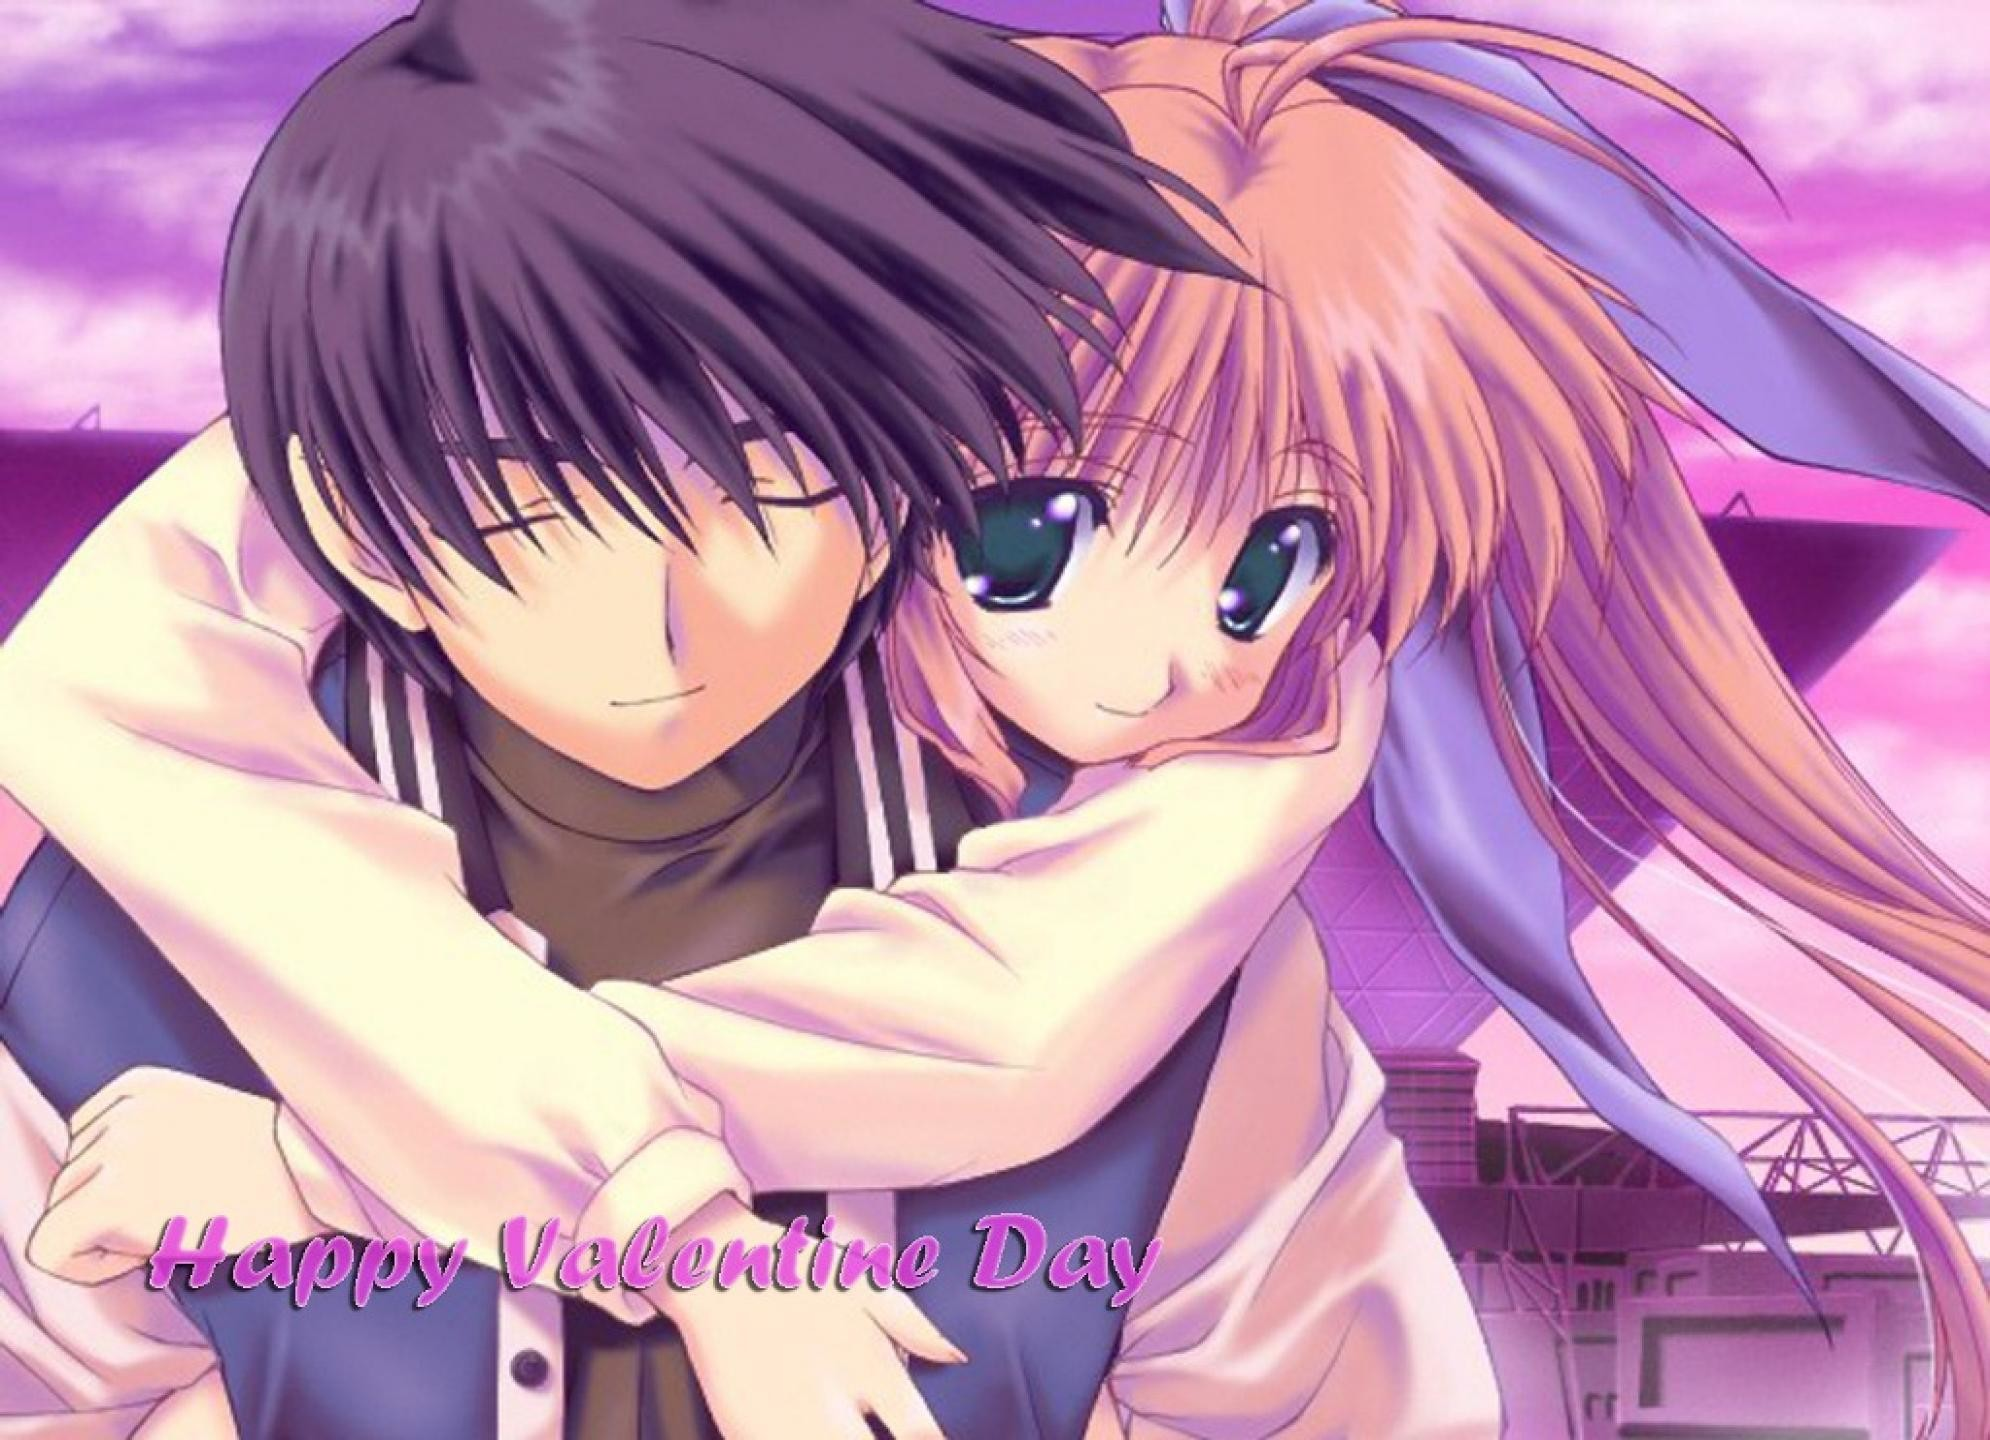 Anime Love Valentines Day HD Wallpaper #7823 #4046 Wallpaper | SpotIMG